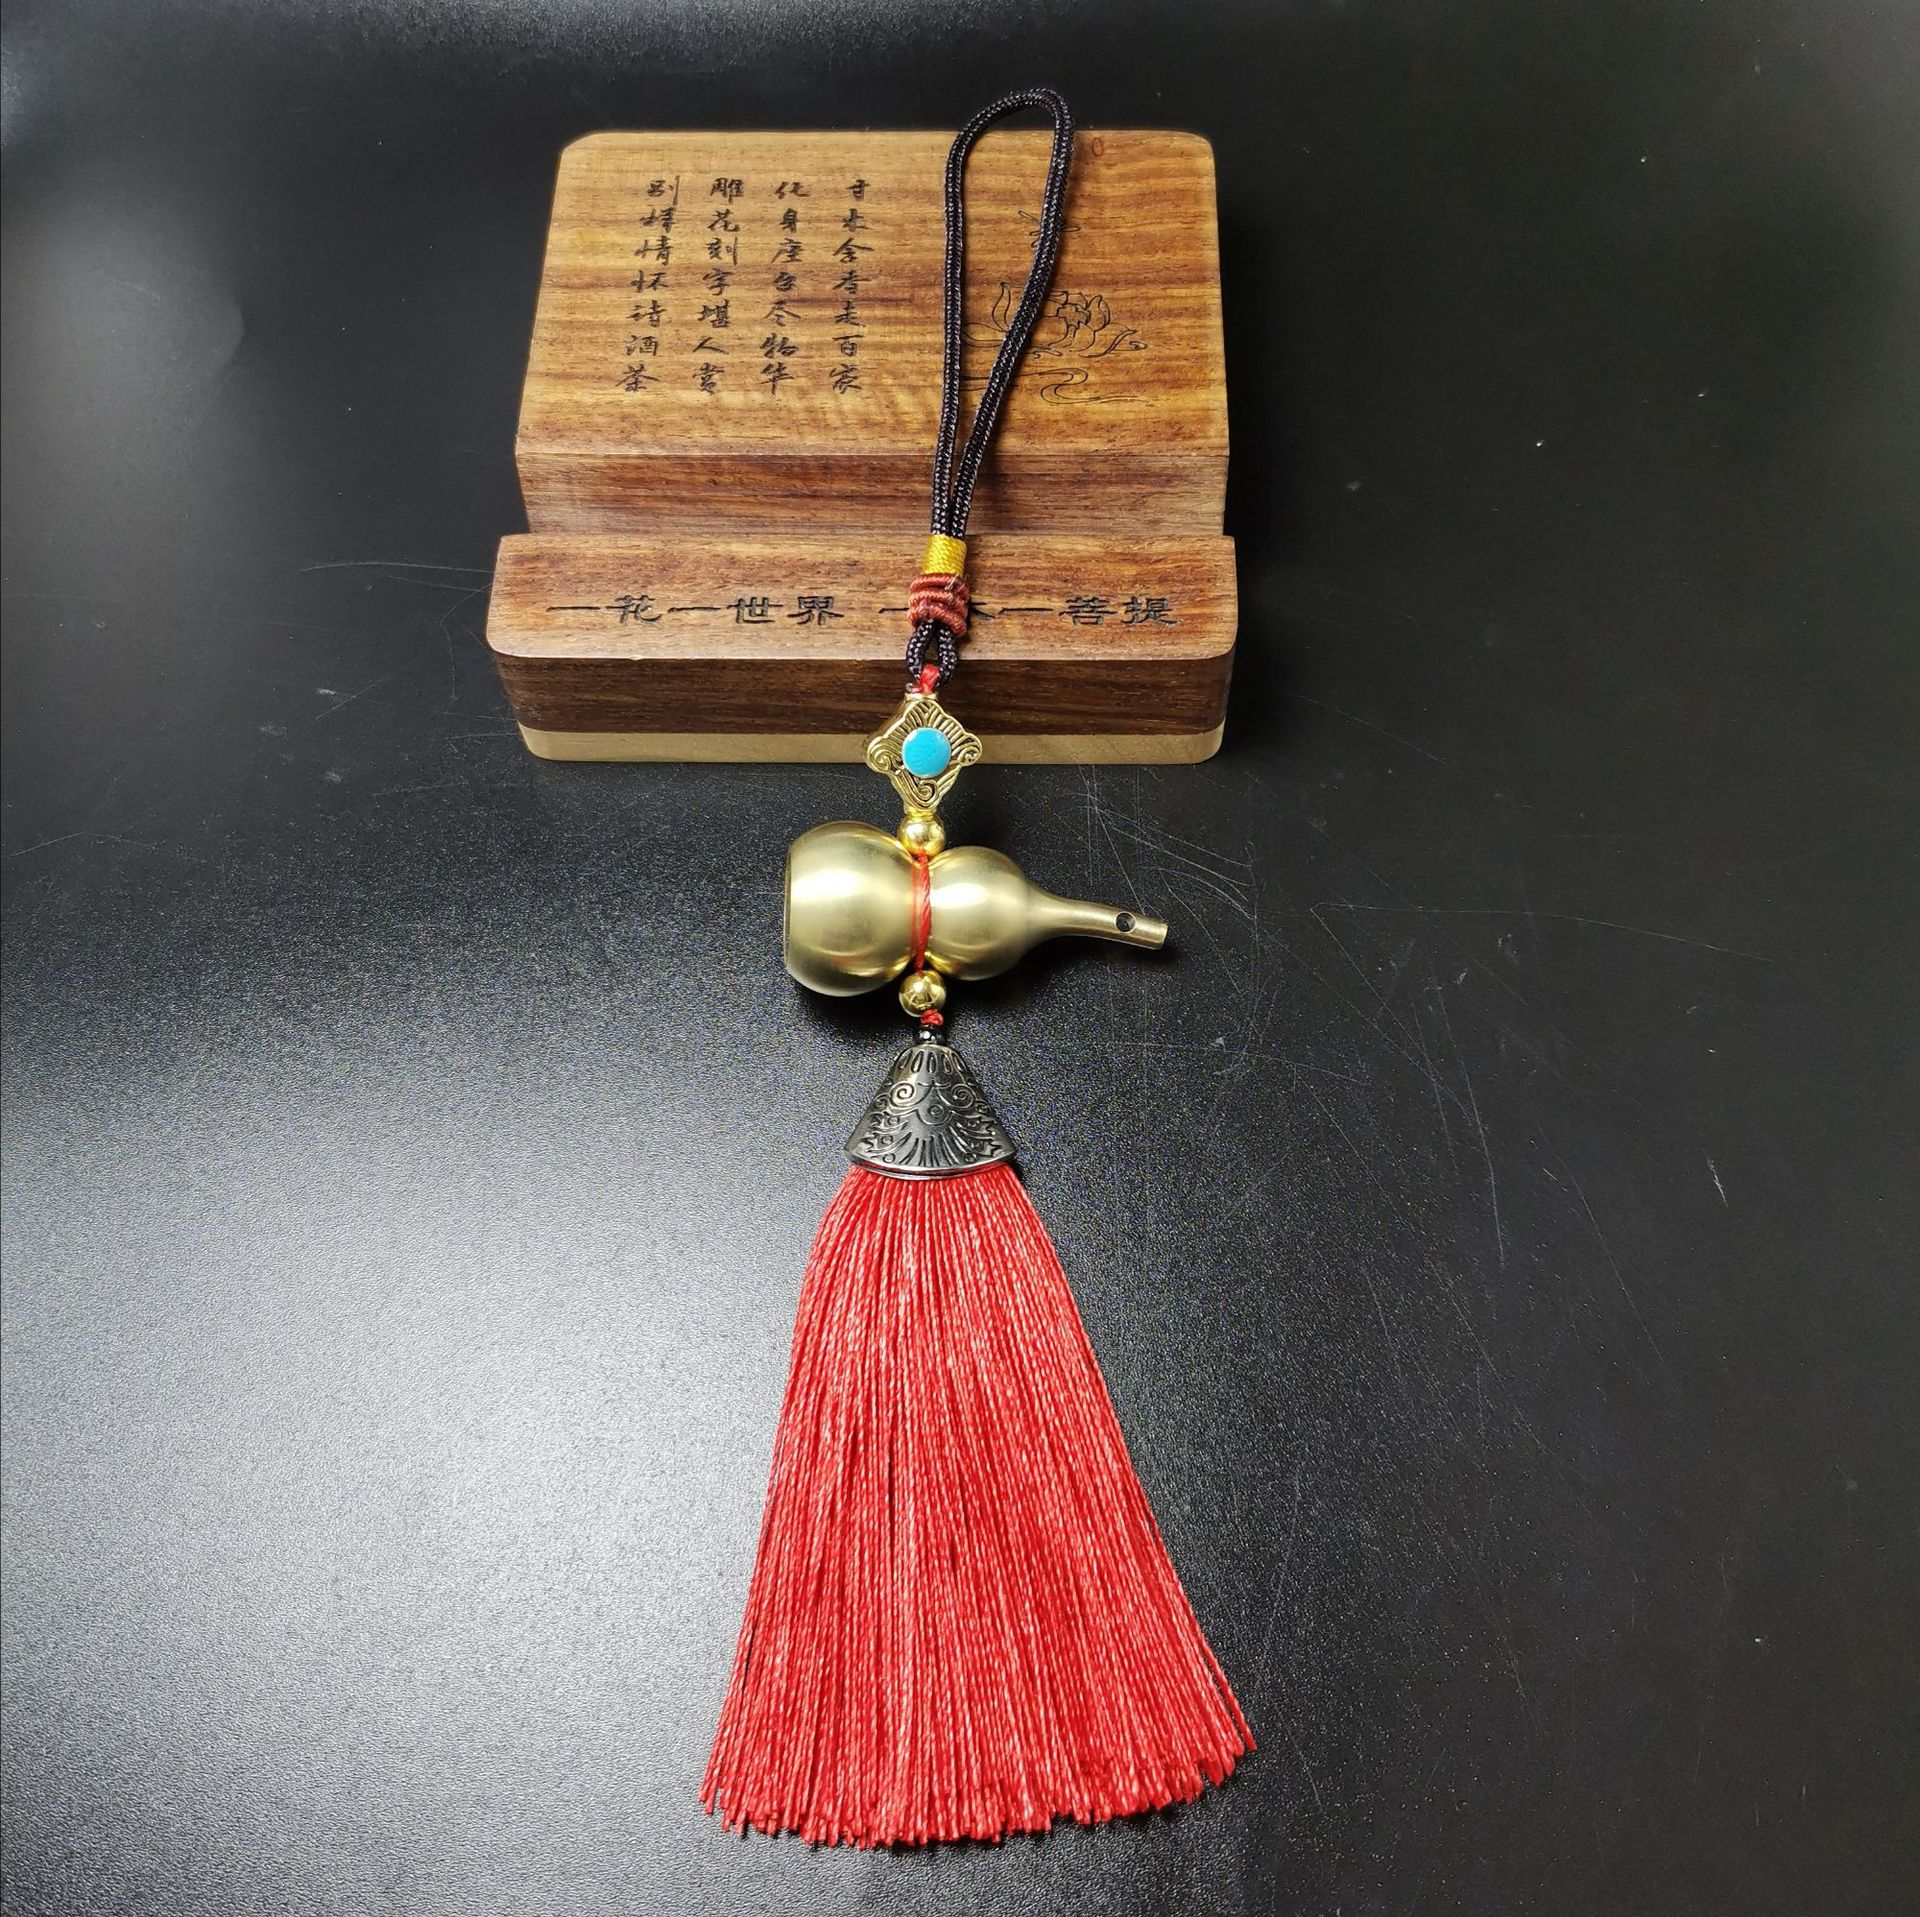 Chinese Gourd Pendant for Rearview Mirror Display